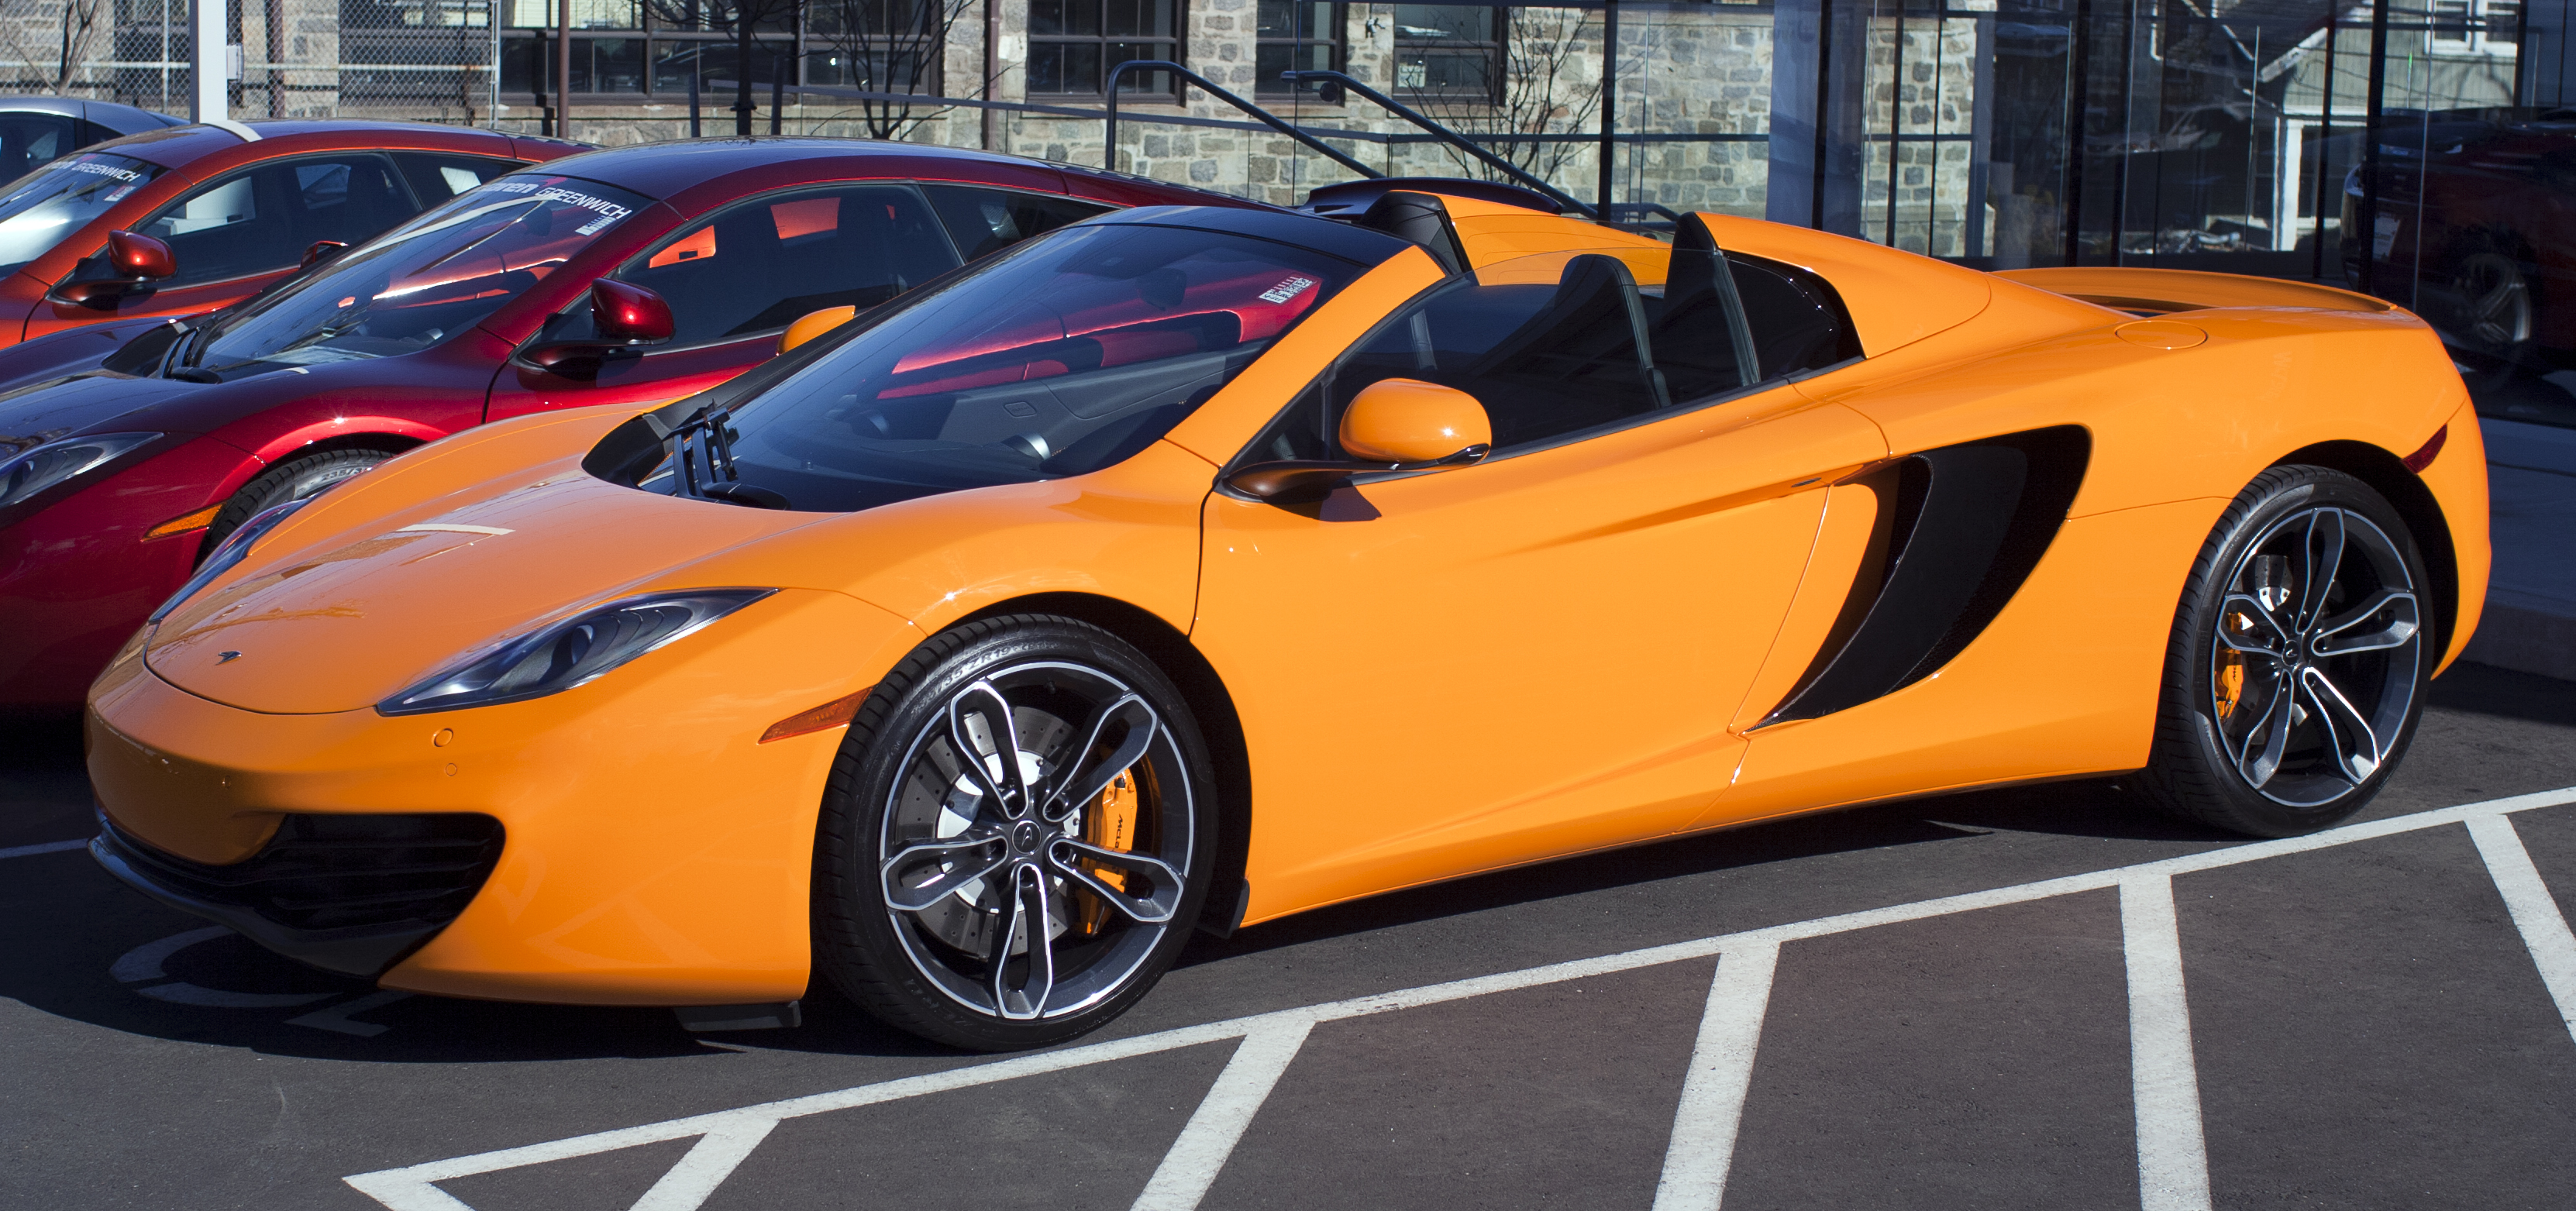 Mclaren P1 Orange >> File:2013 McLaren MP4-12C Spider fl.jpg - Wikimedia Commons